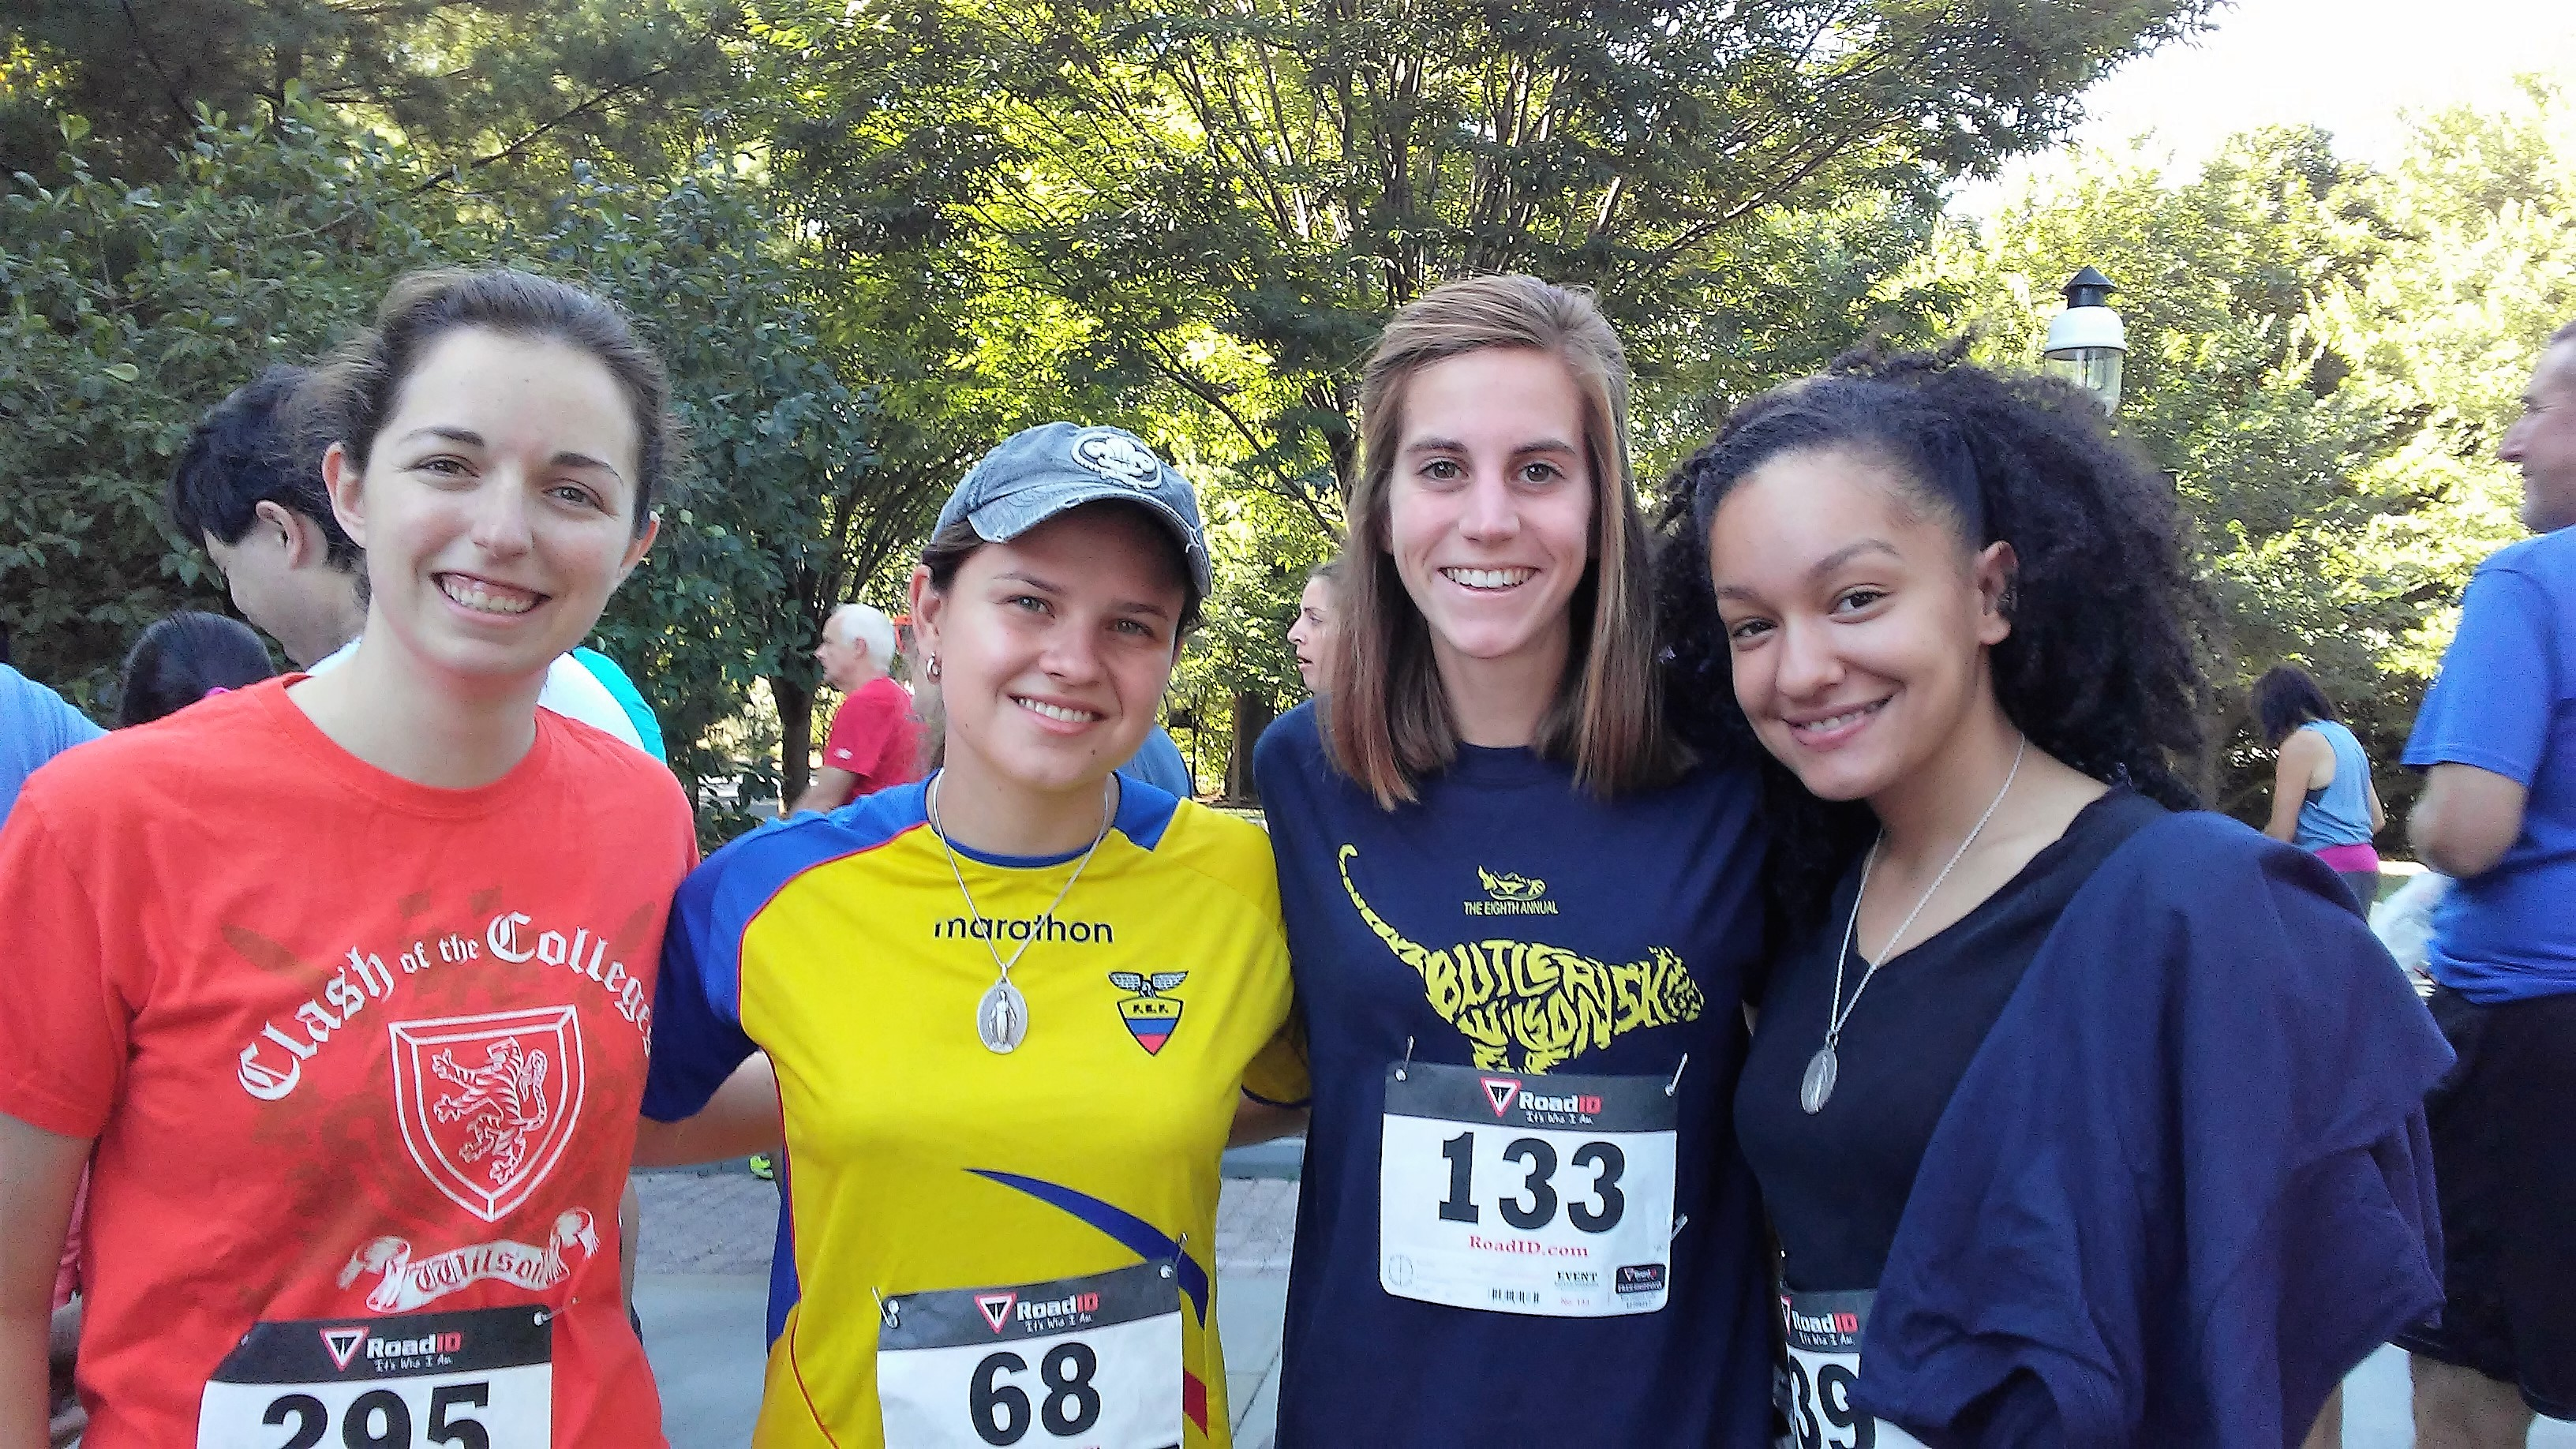 Outside of attending events together at Aquinas, a few of my Catholic friends and I try to meet up weekly to have some fun. Here is a photo from our 5K this September!